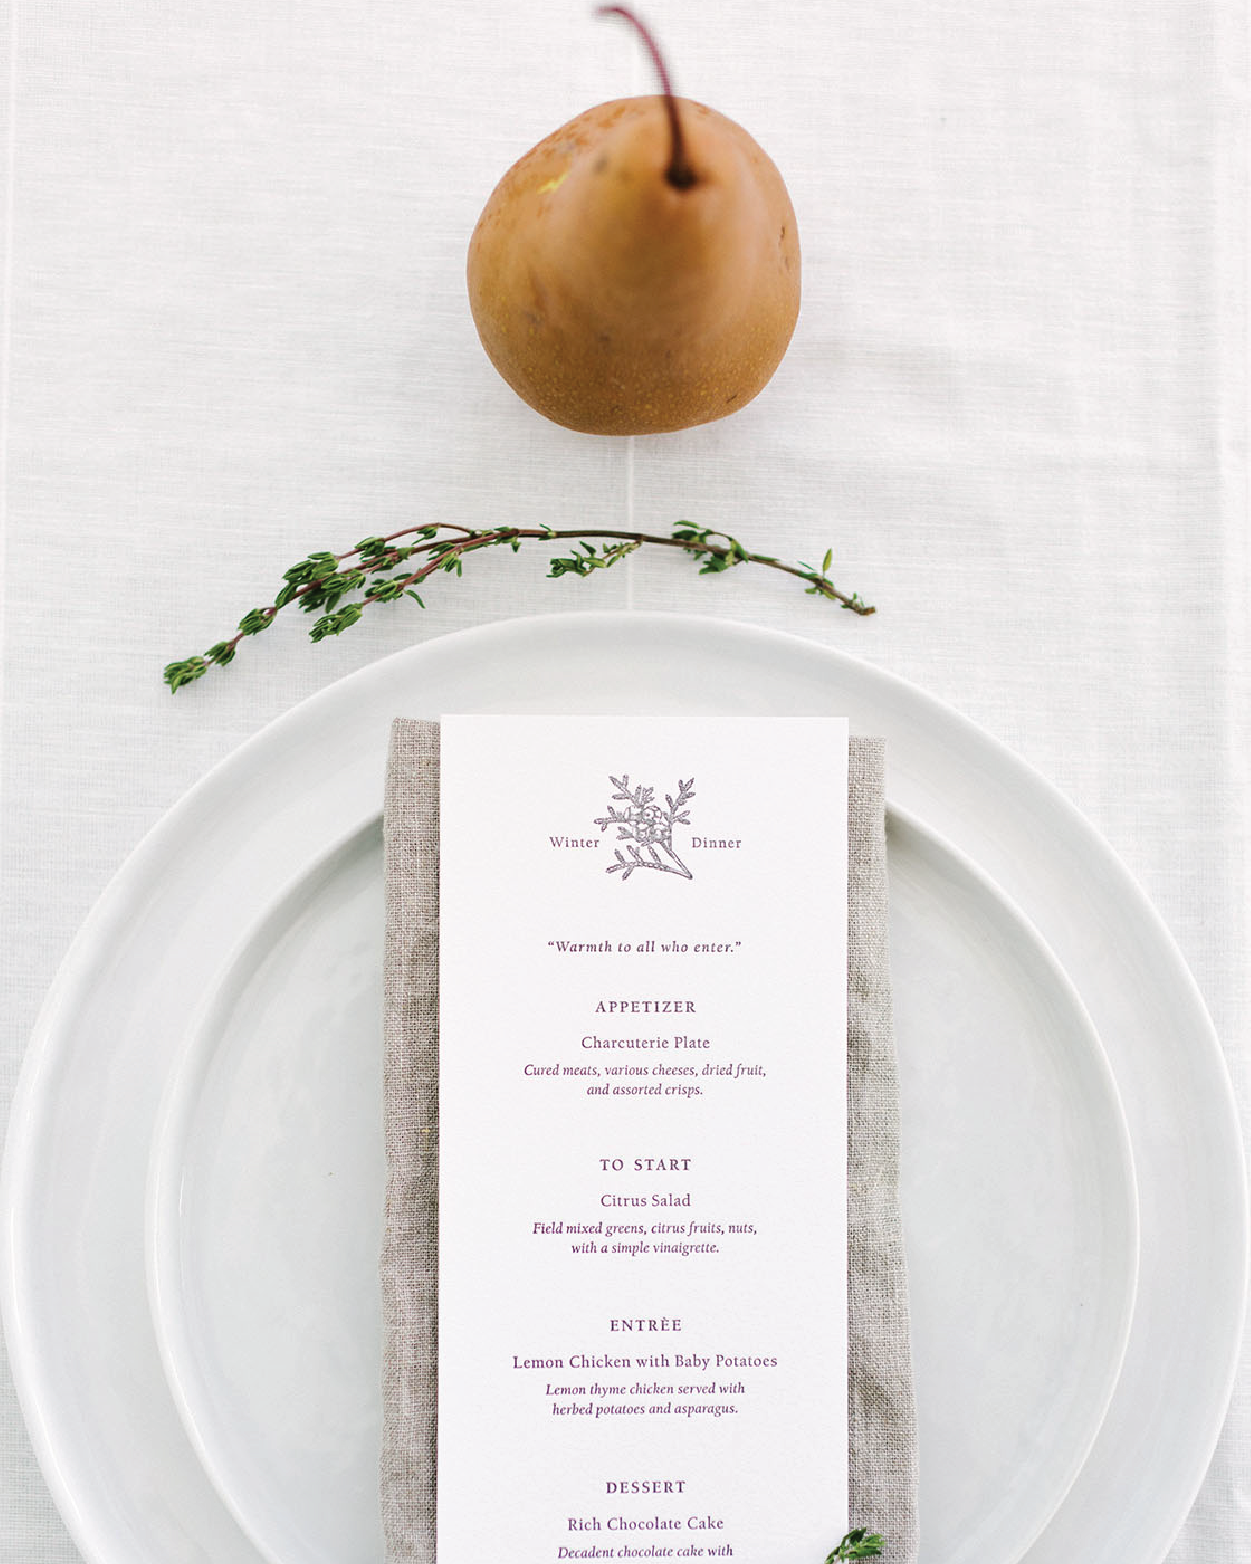 Flower & Fig  | Print Design   Flower & Fig is all about empowering the everyday hostess by providing planning kits & resources for creating beautiful gatherings that cultivate community and life giving conversations.